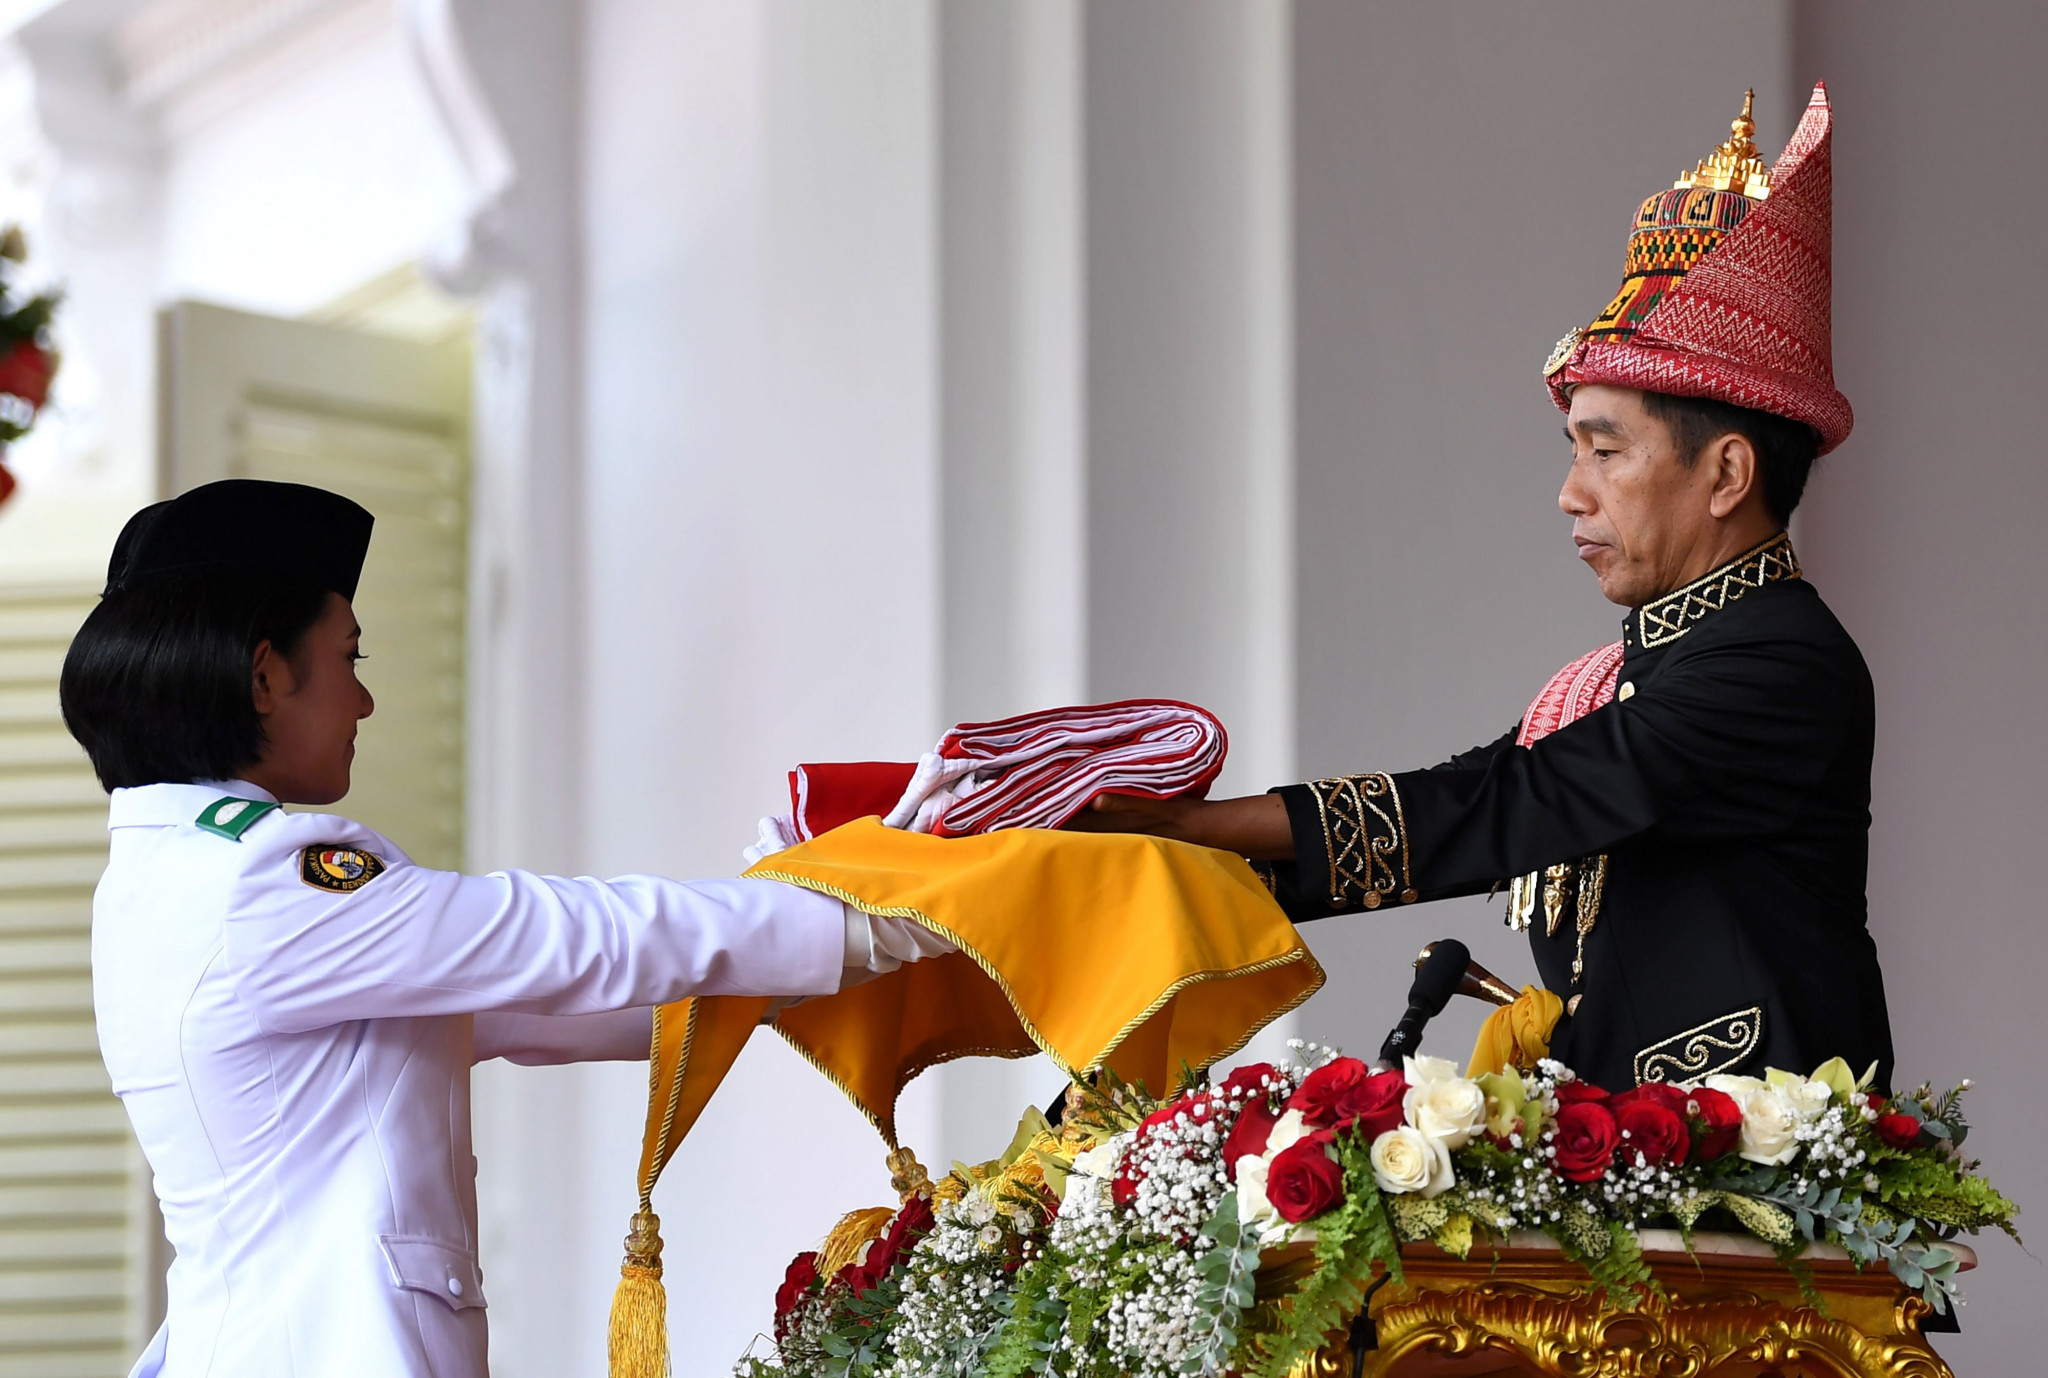 Widodo had earlier taken part in a ceremony at Jakarta's Presidential Palace to mark Indonesia's 73rd Independence Day ©Getty Images